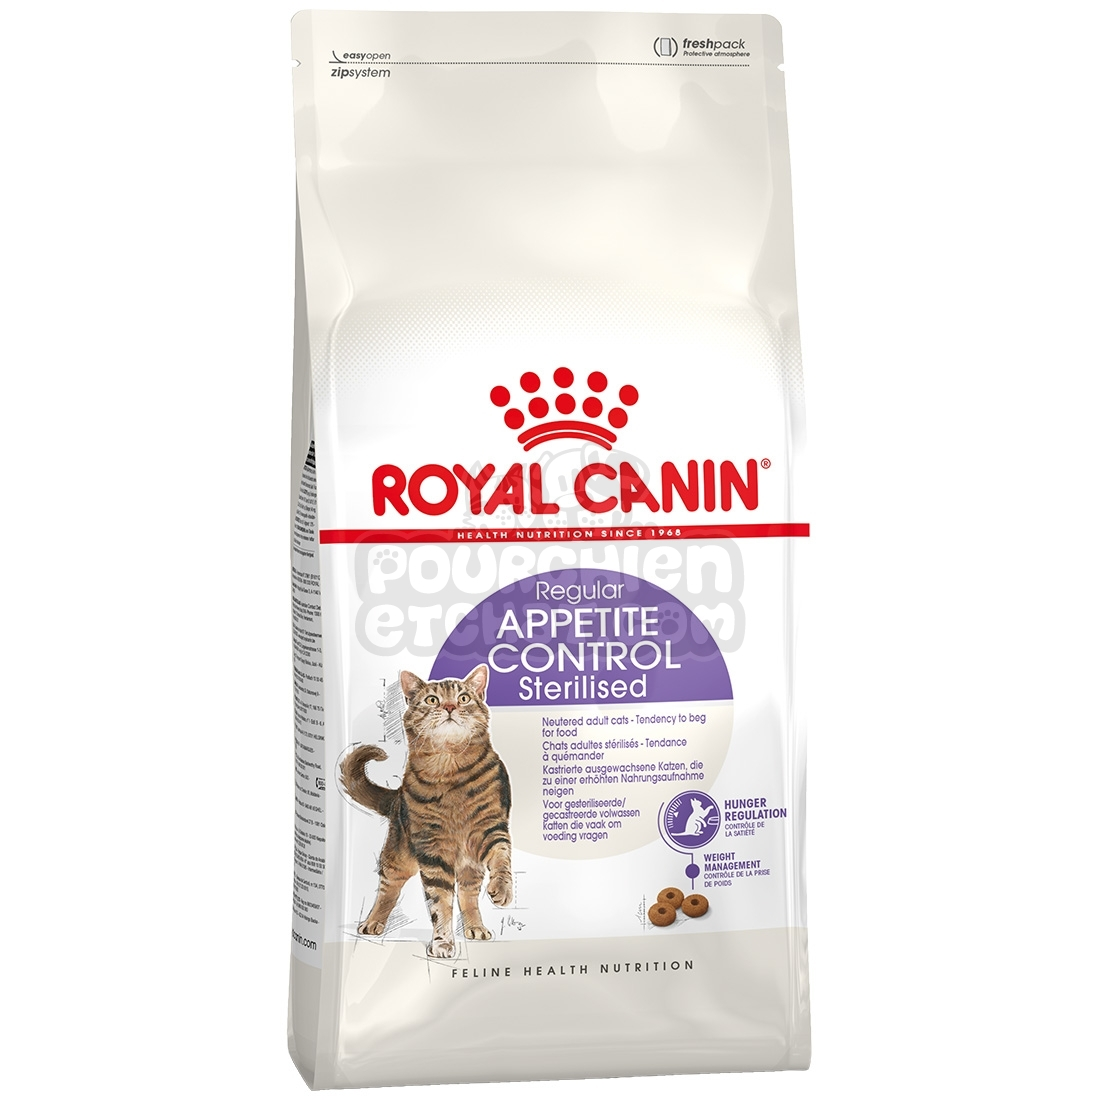 royal canin sterilised appetite control. Black Bedroom Furniture Sets. Home Design Ideas